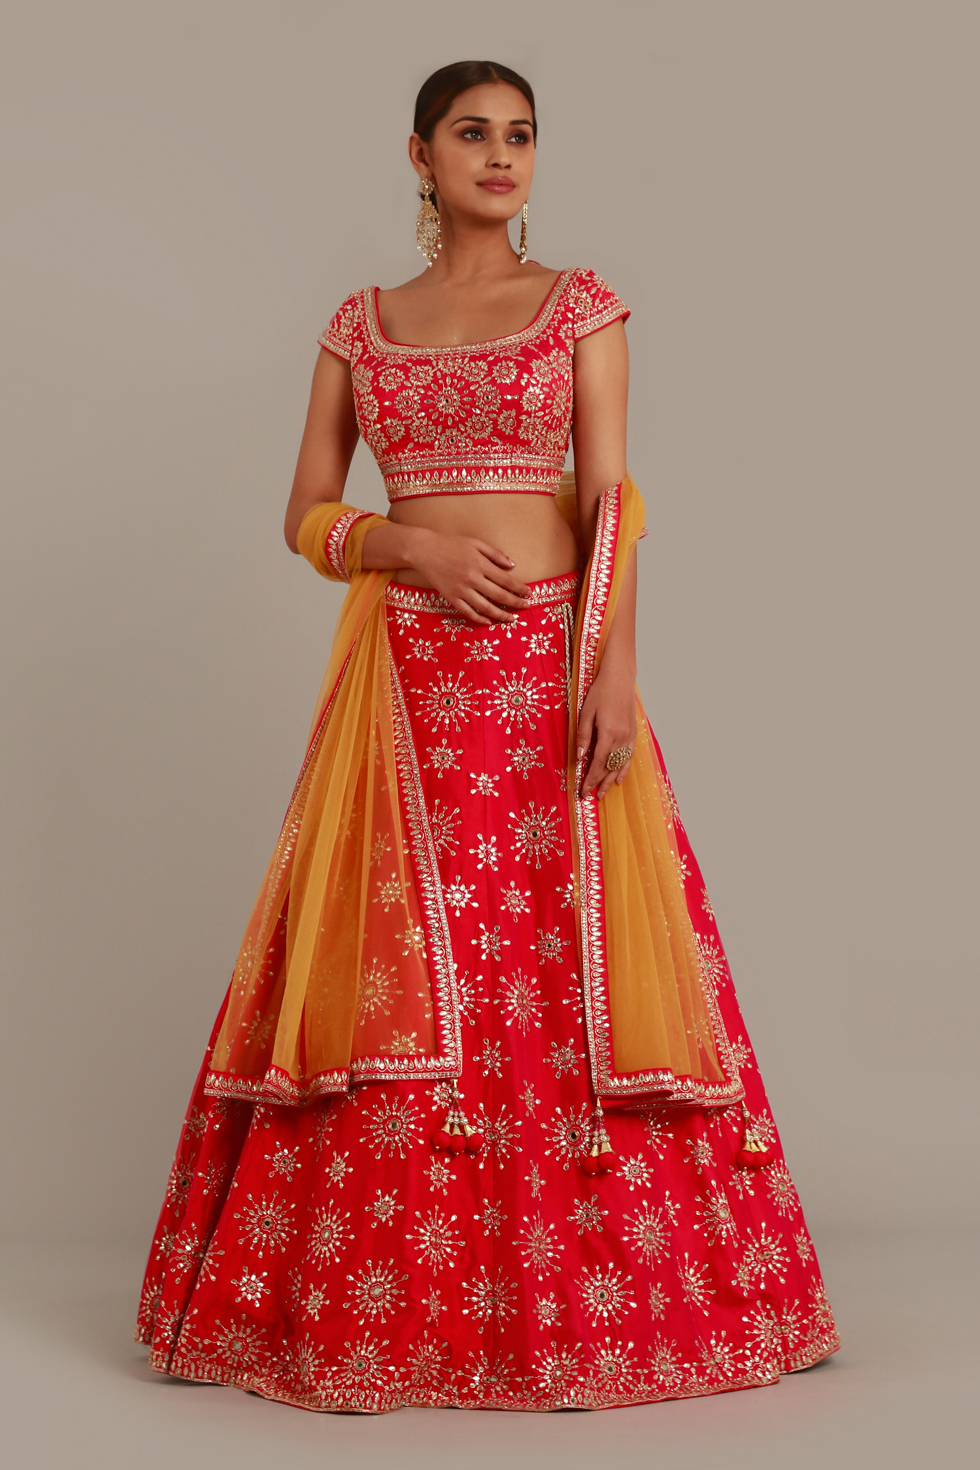 Cherry pink and red lehenga set with gota work and contrast yellow dupatta with matching border